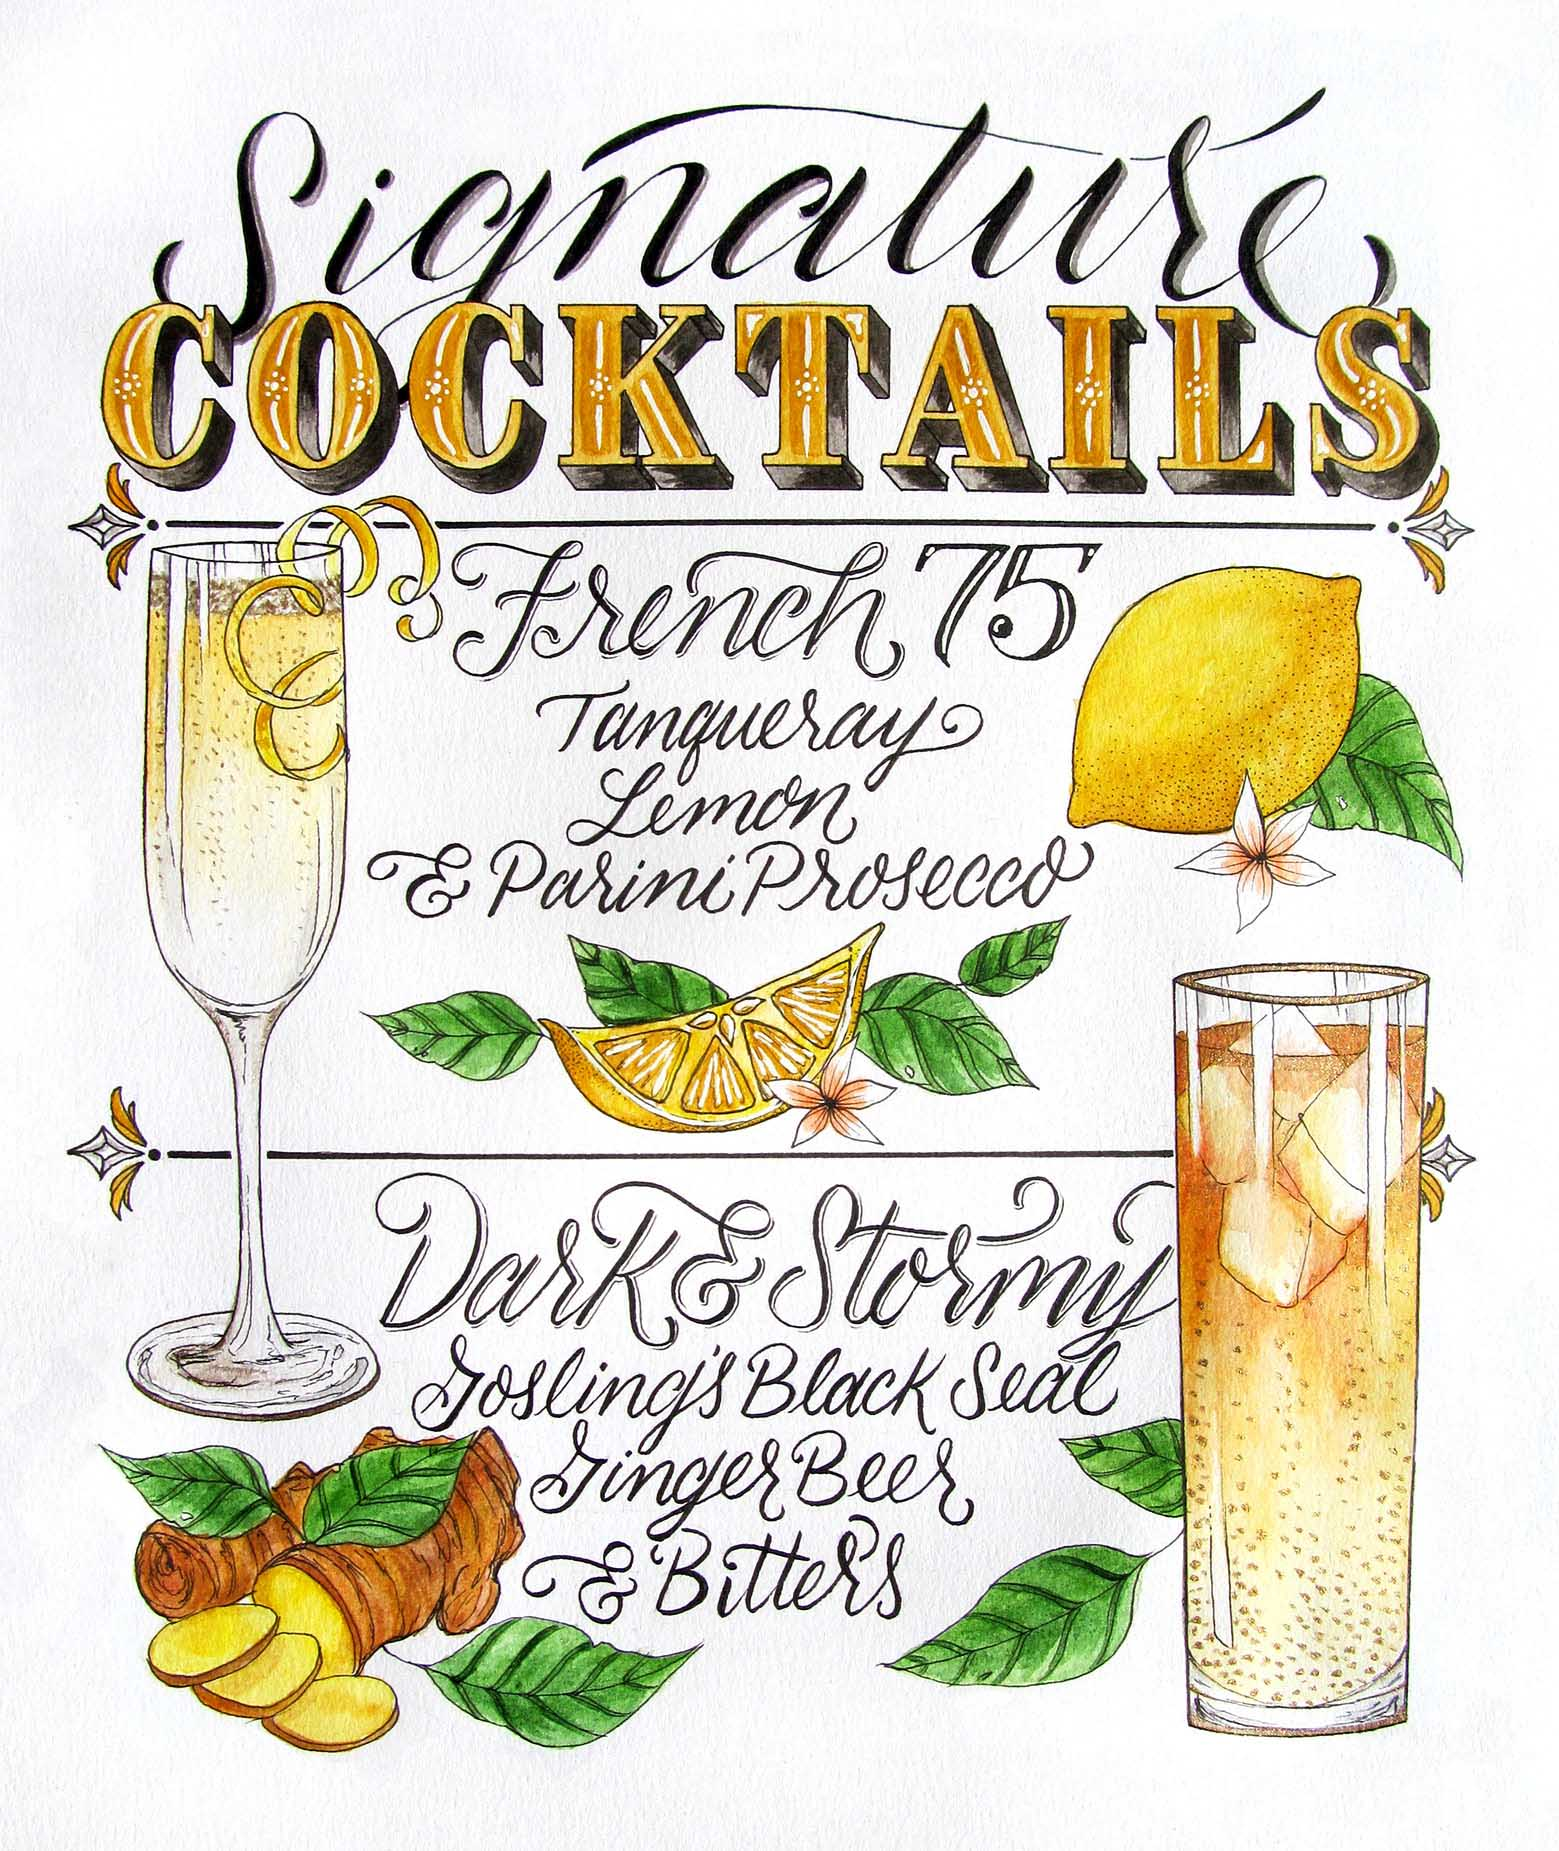 SignatureCocktails_small.jpg